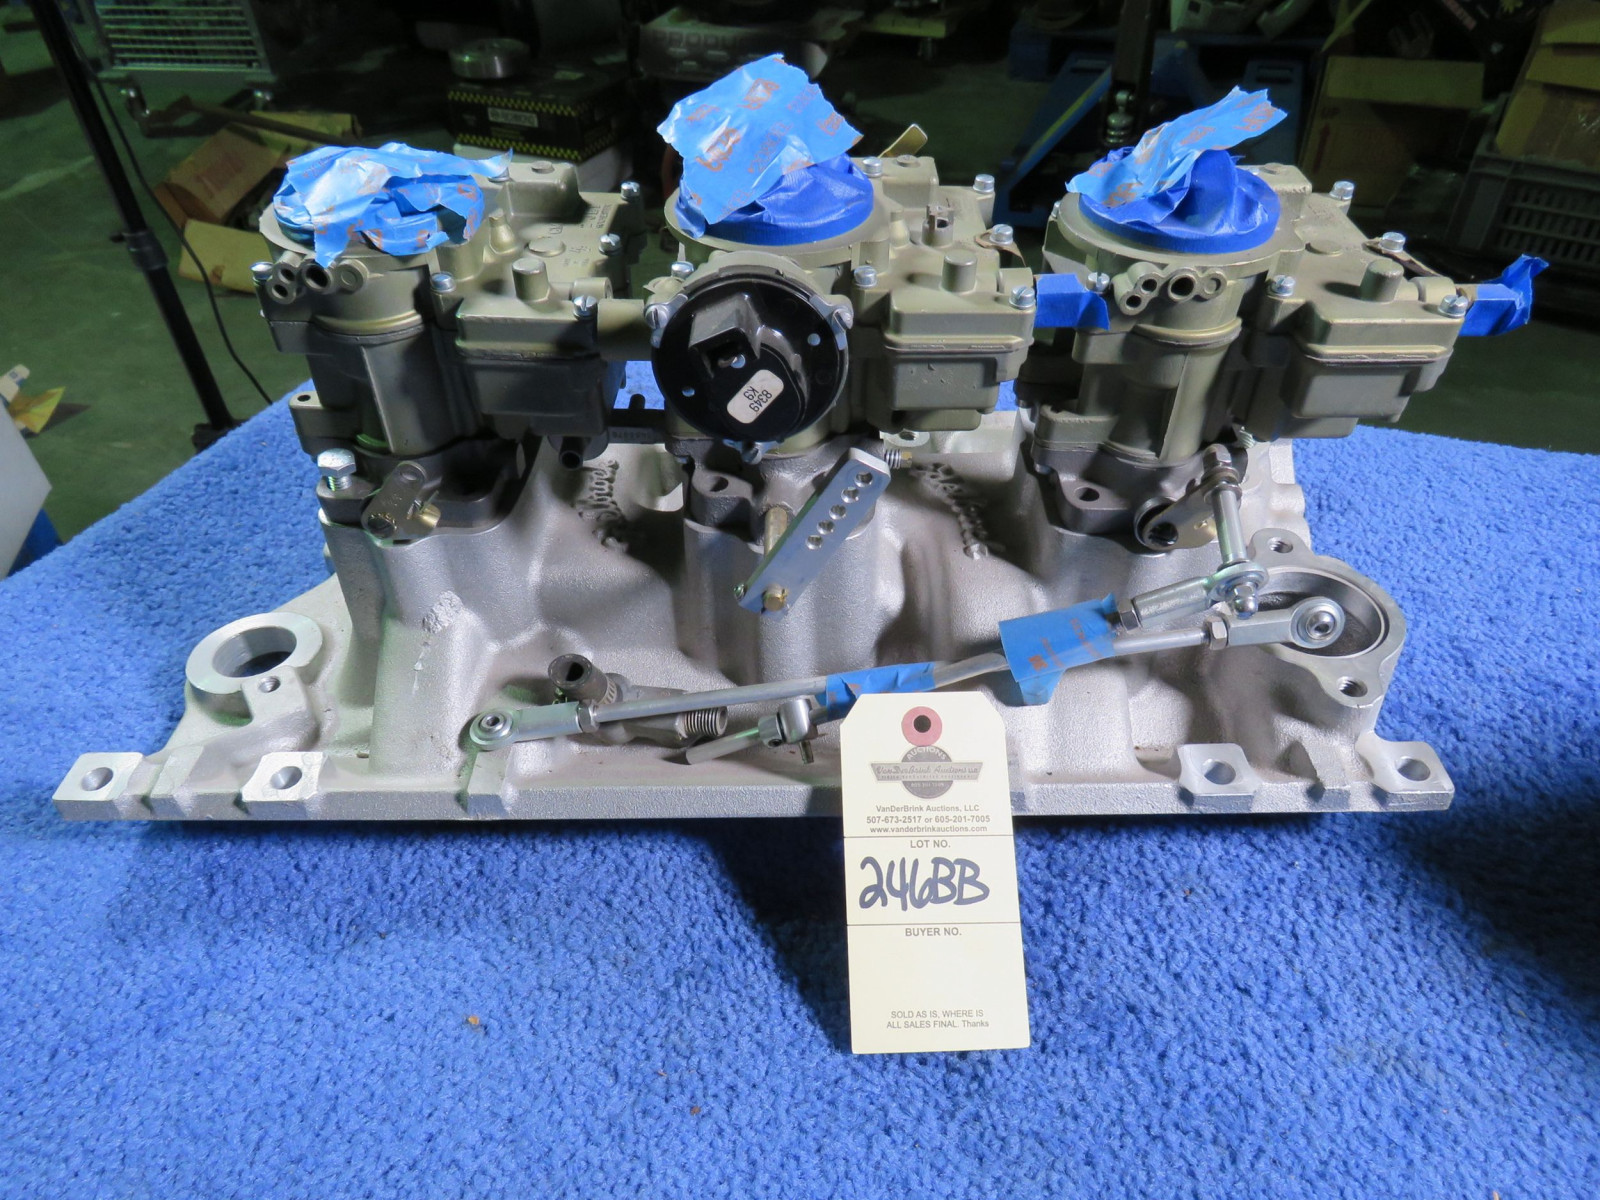 Tri-Power with Edelbrock Intake and Rochester Carbs - Image 1